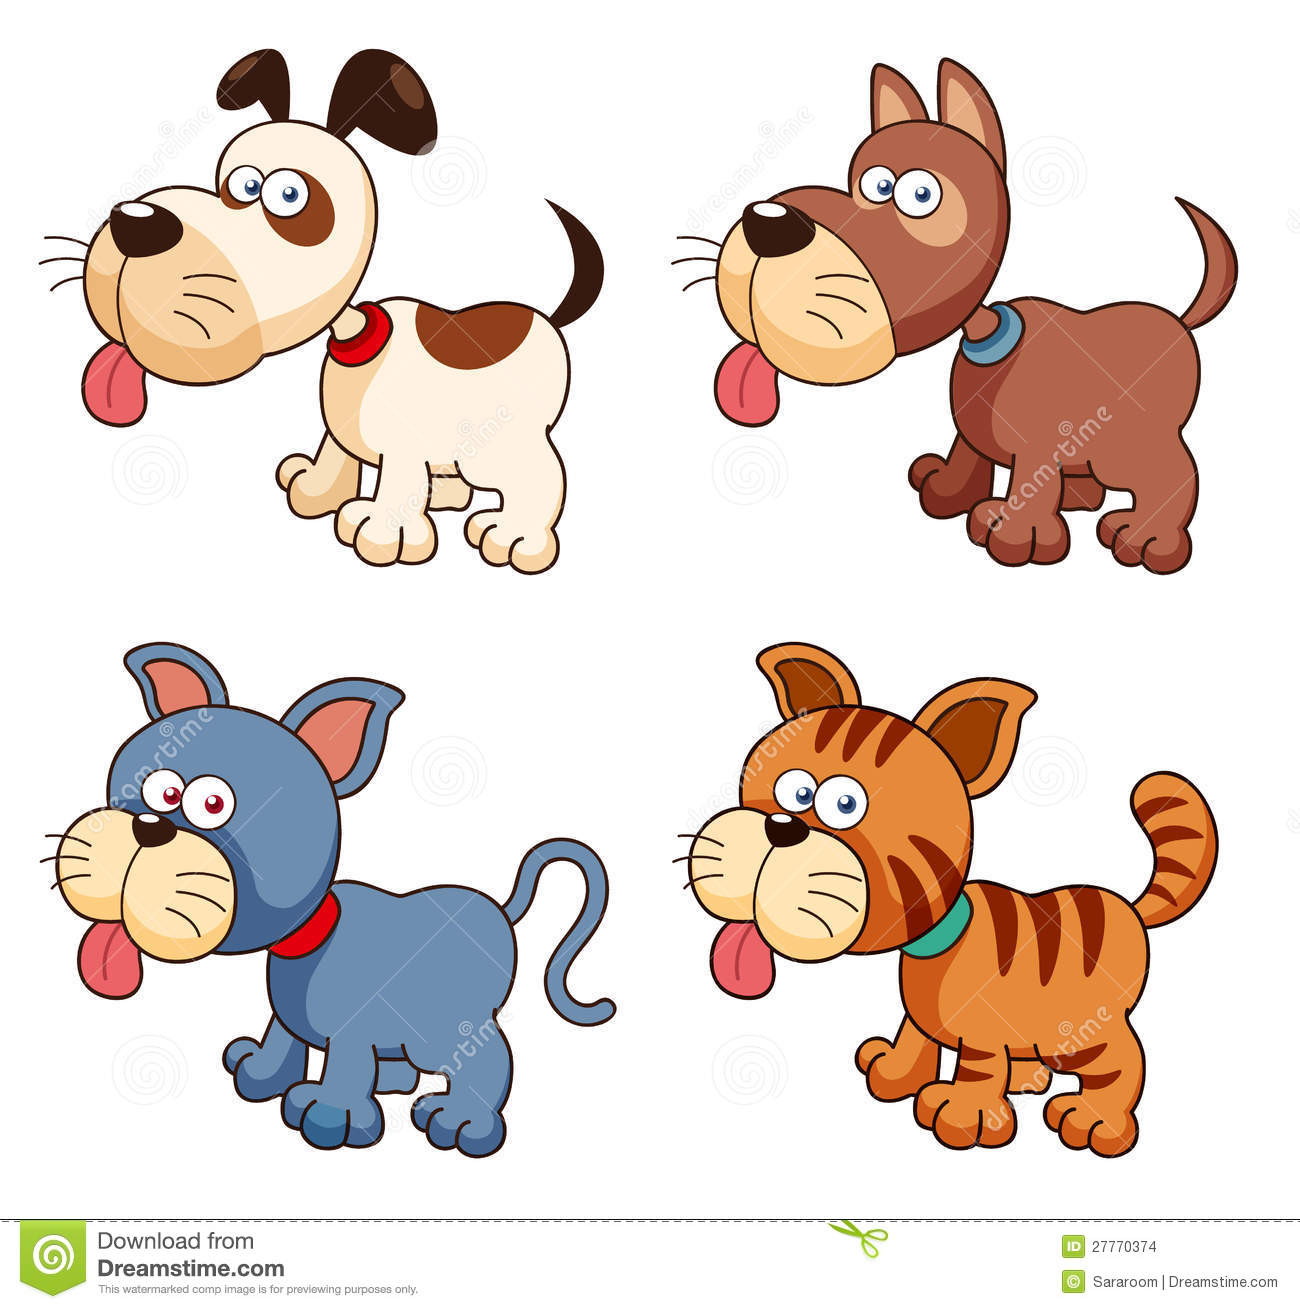 3413 Cats free clipart.